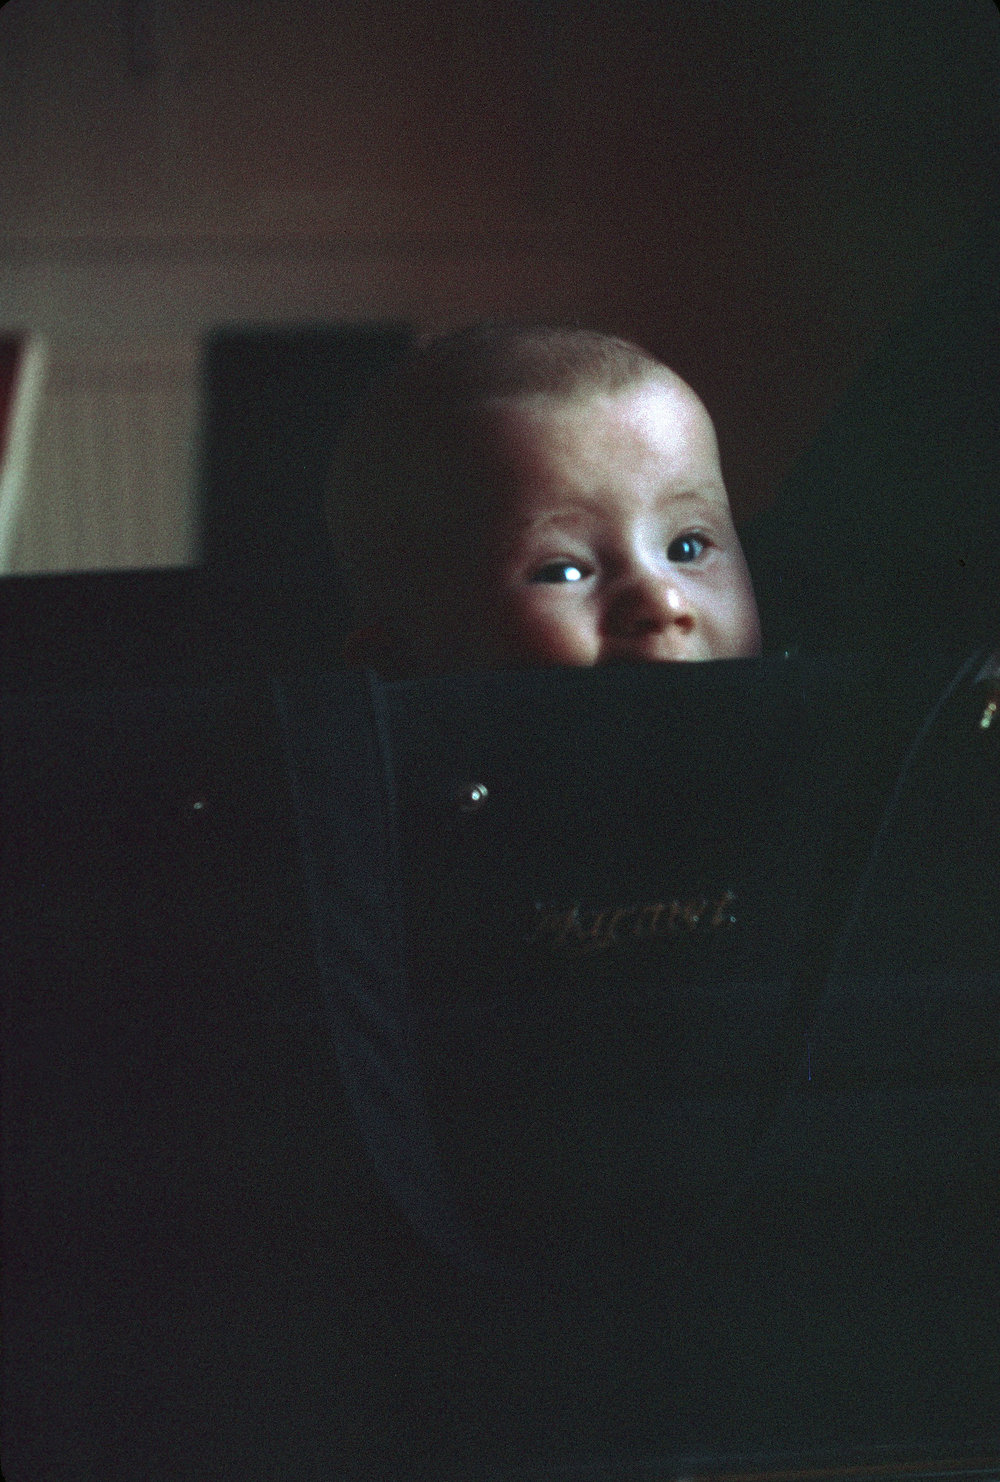 Me, peering out over the side of the pram.